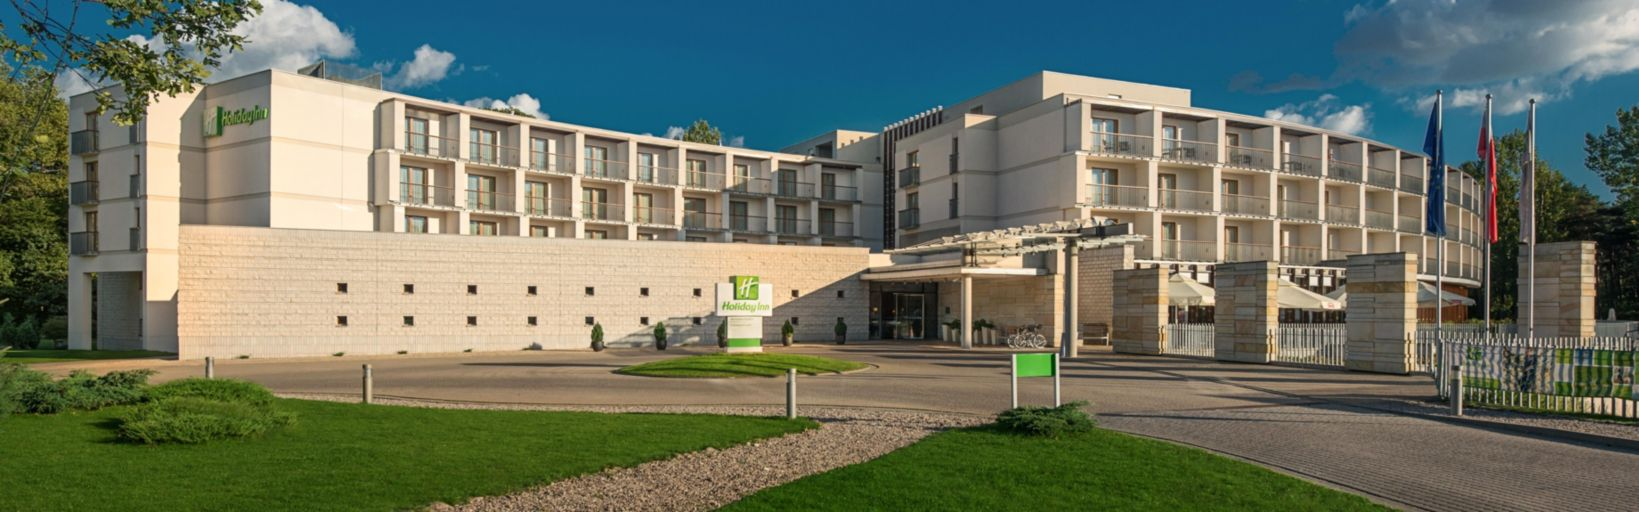 Holiday Inn Jozefow